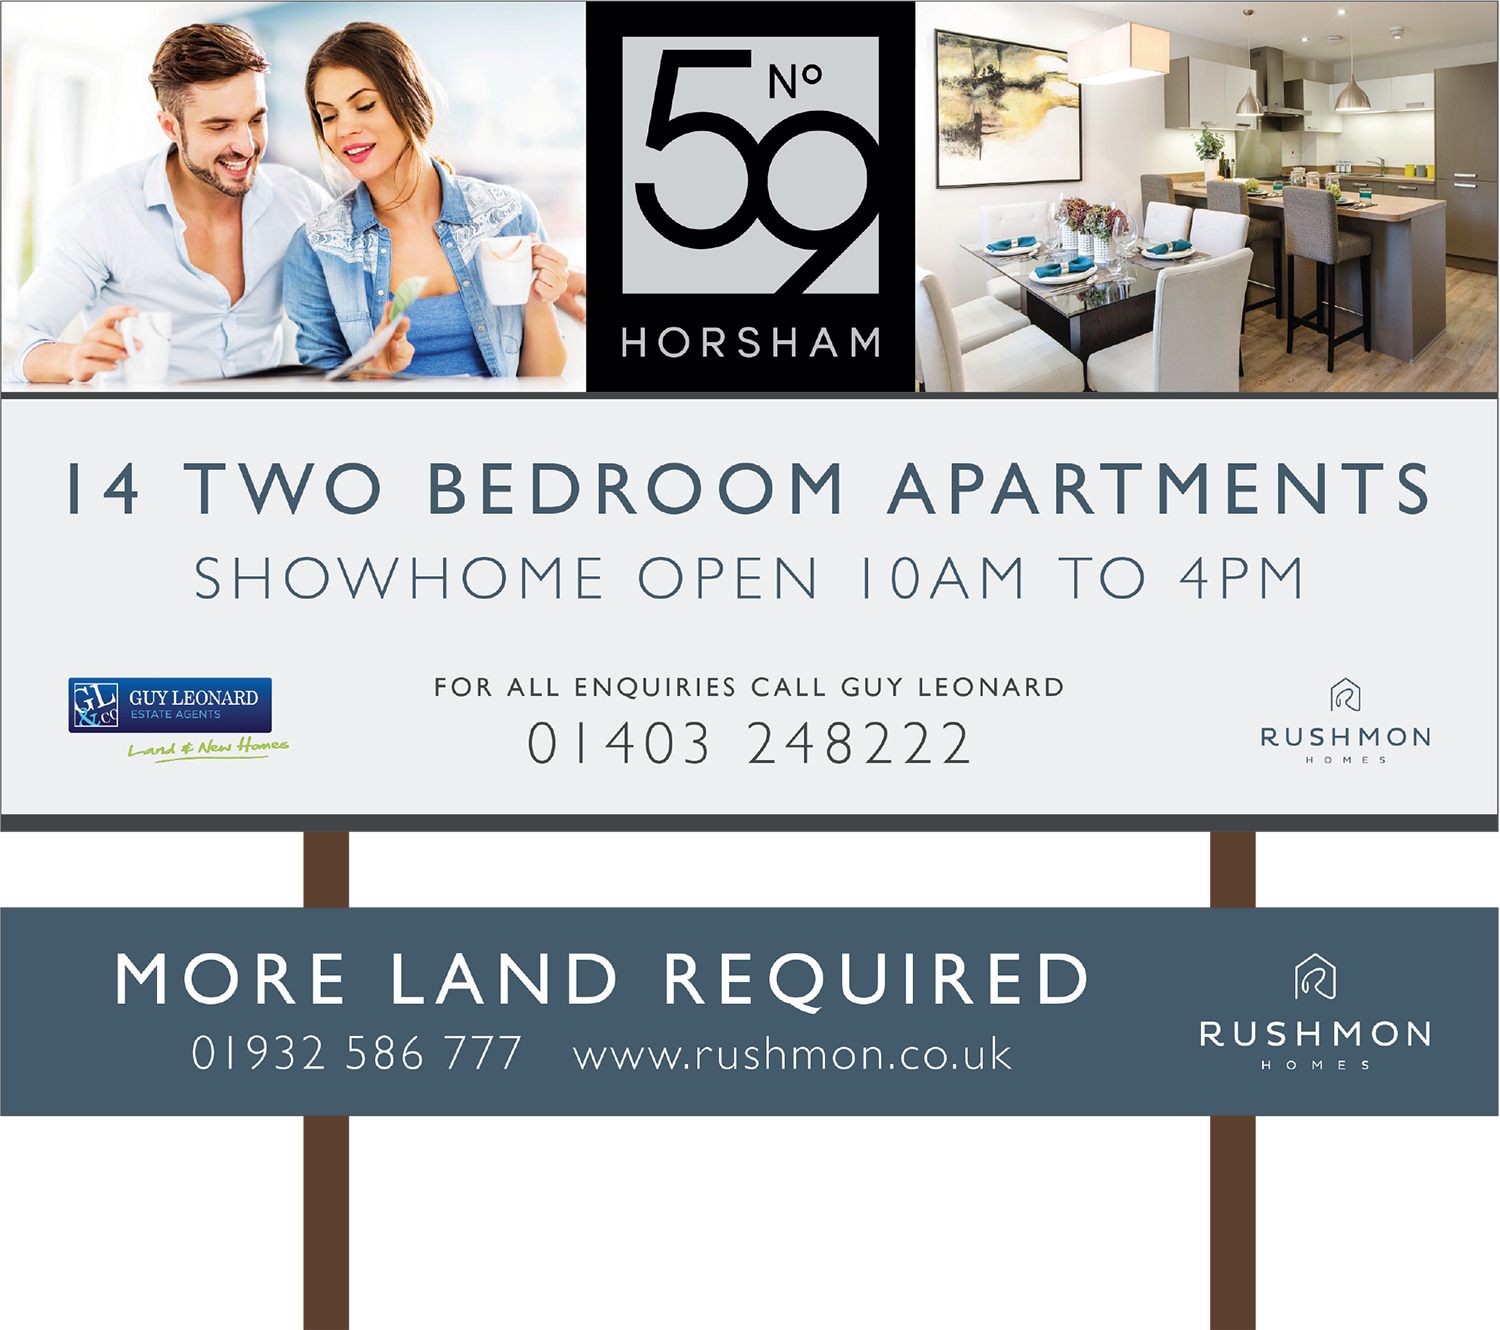 RUSHMON HOMES - 59 HORSHAM